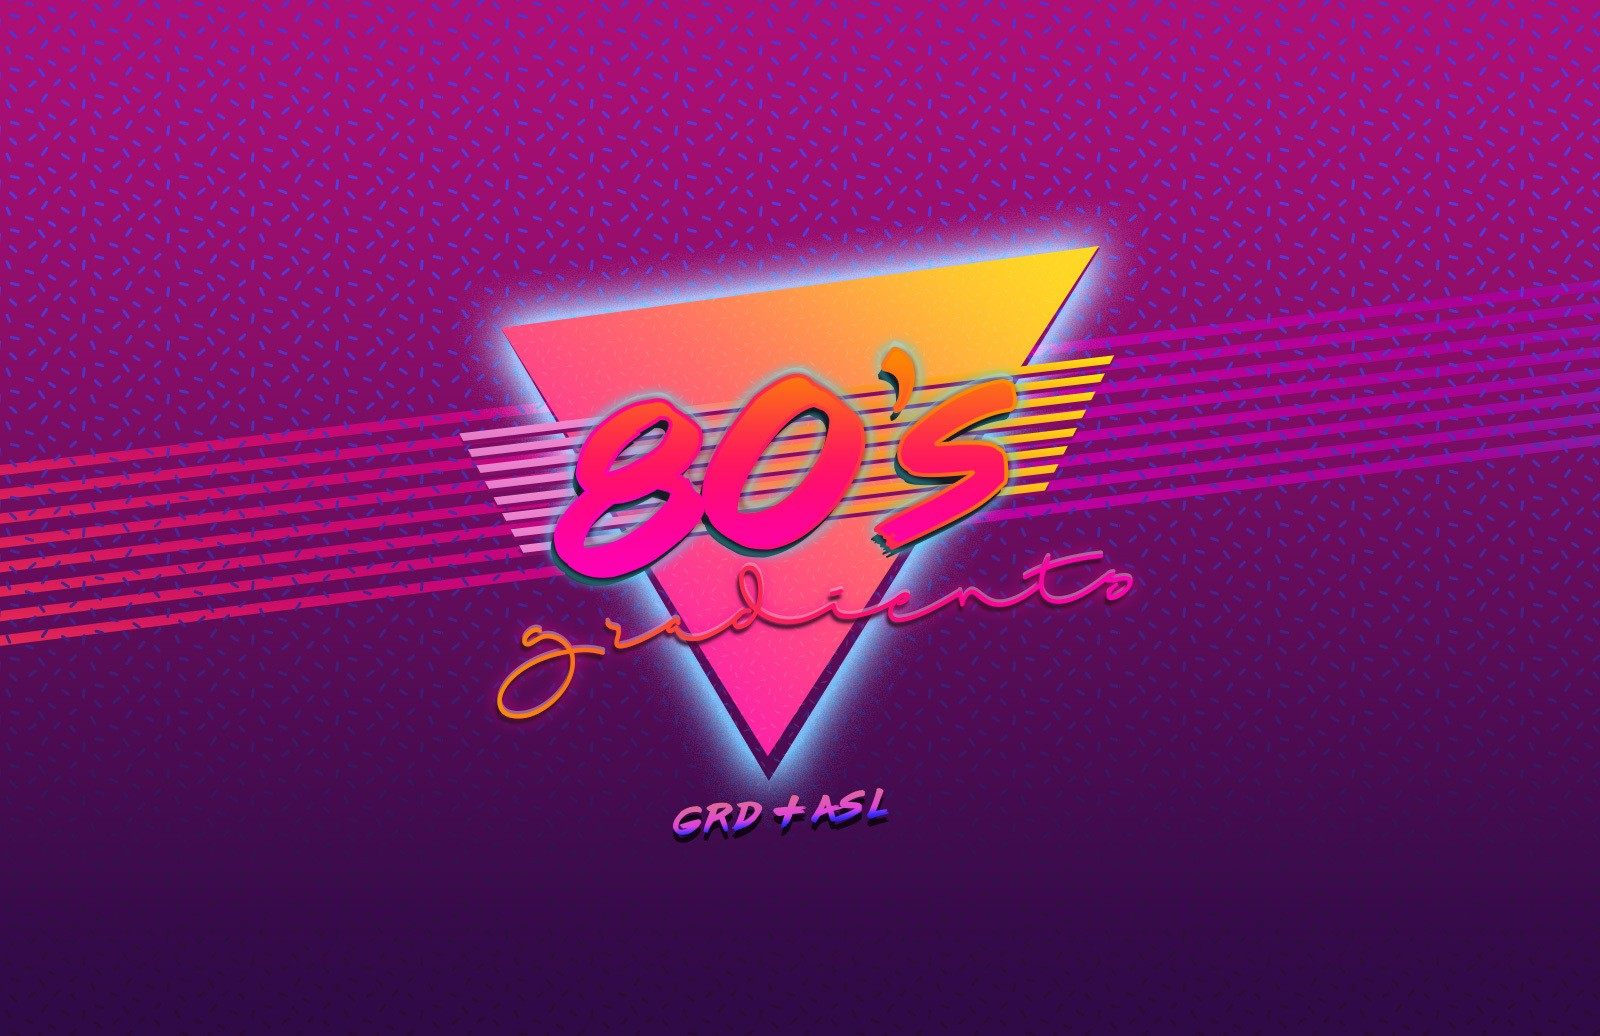 Retro 80s Gradients for Photoshop